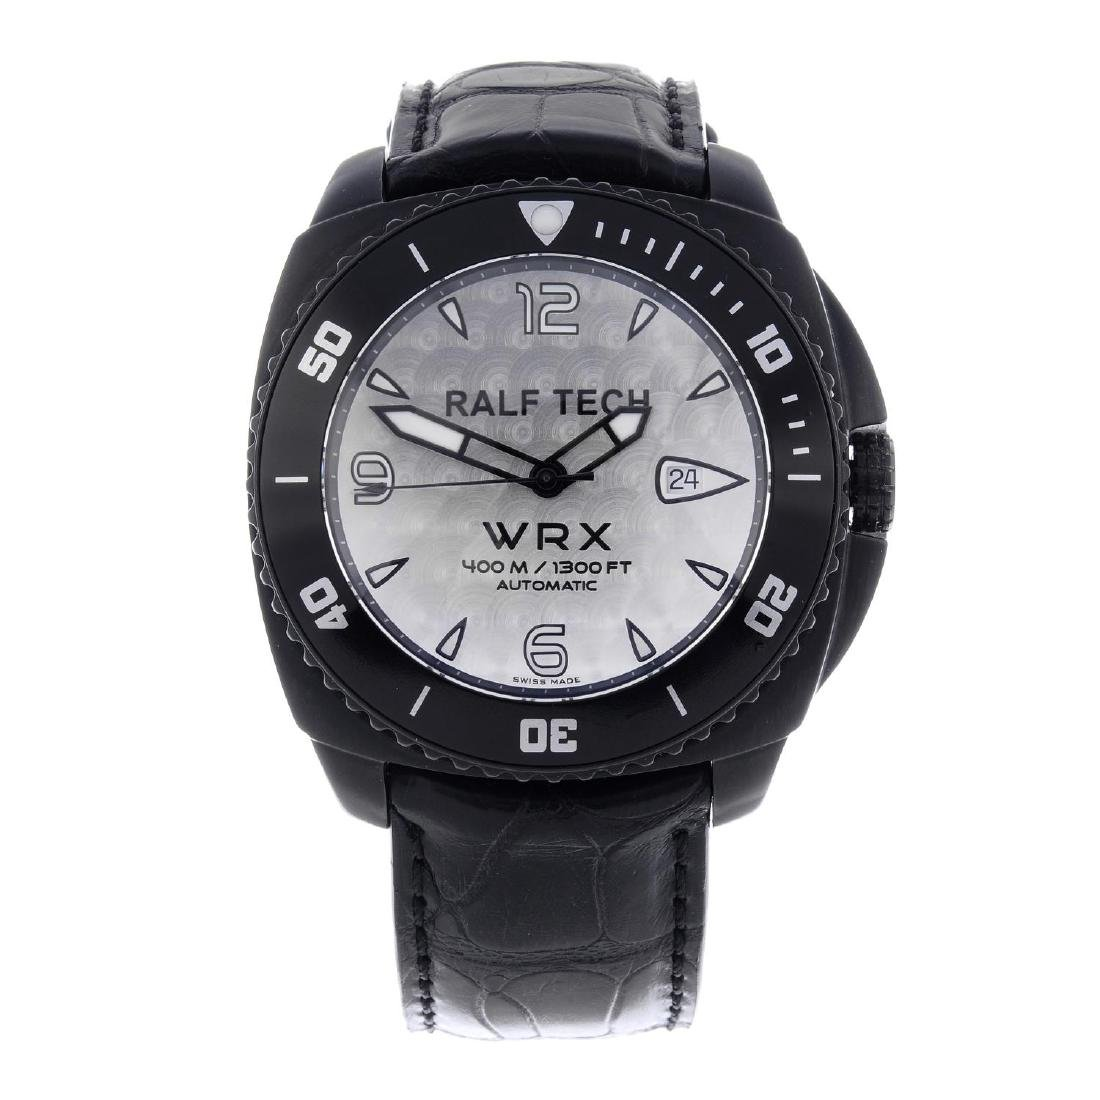 RALF TECH - a gentleman's WRX wrist watch. PVD-treated